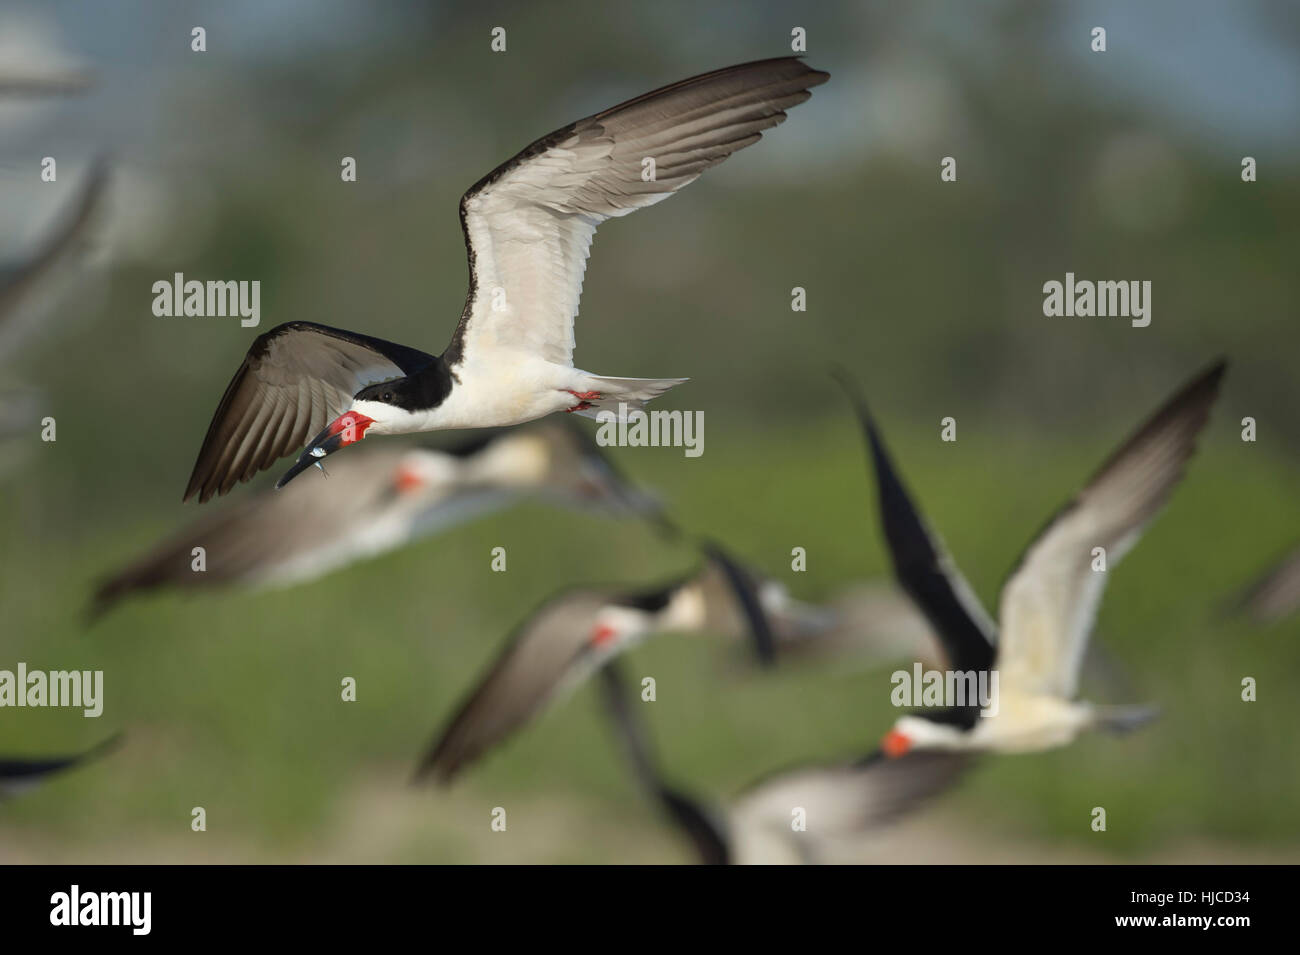 A Black Skimmer flies with a fish in its beak in front of a flock of other Skimmers. - Stock Image